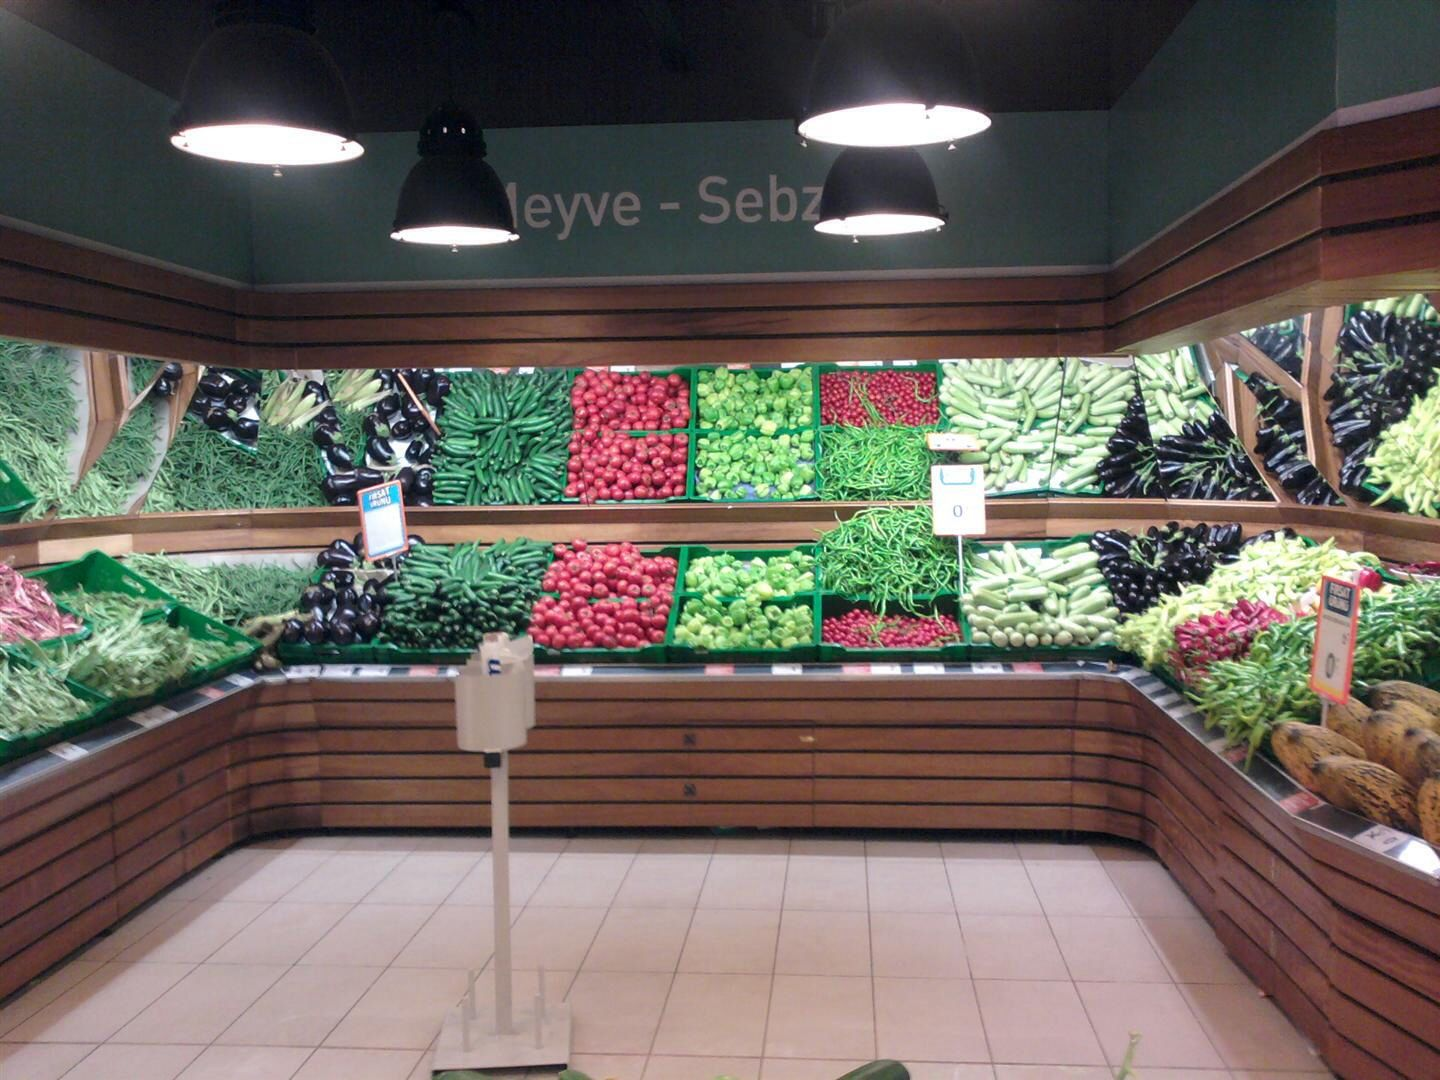 Supermarkets grocery store designs grocery store designs for Vegetable design